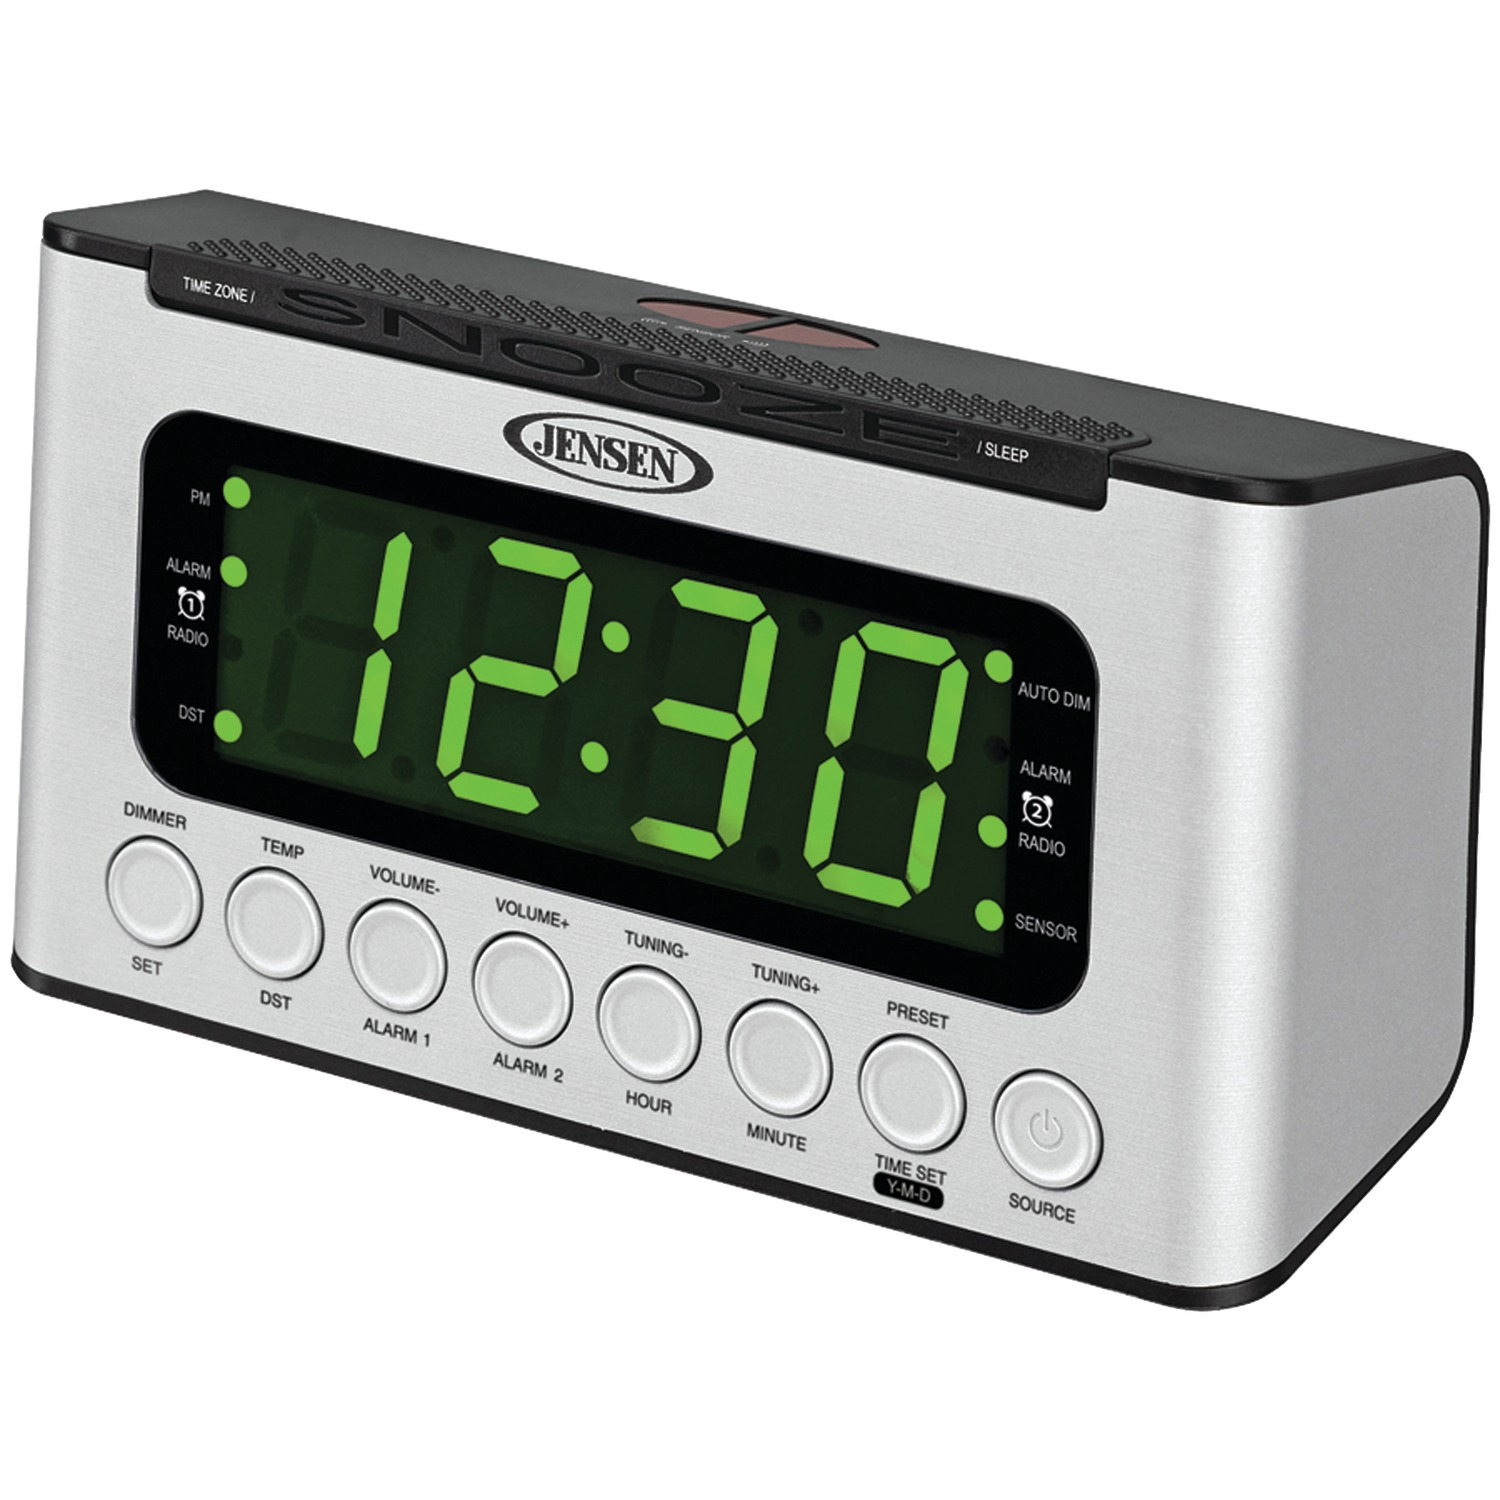 jensen jcr 231 digital am fm dual alarm clock radio with wave sensor ebay. Black Bedroom Furniture Sets. Home Design Ideas